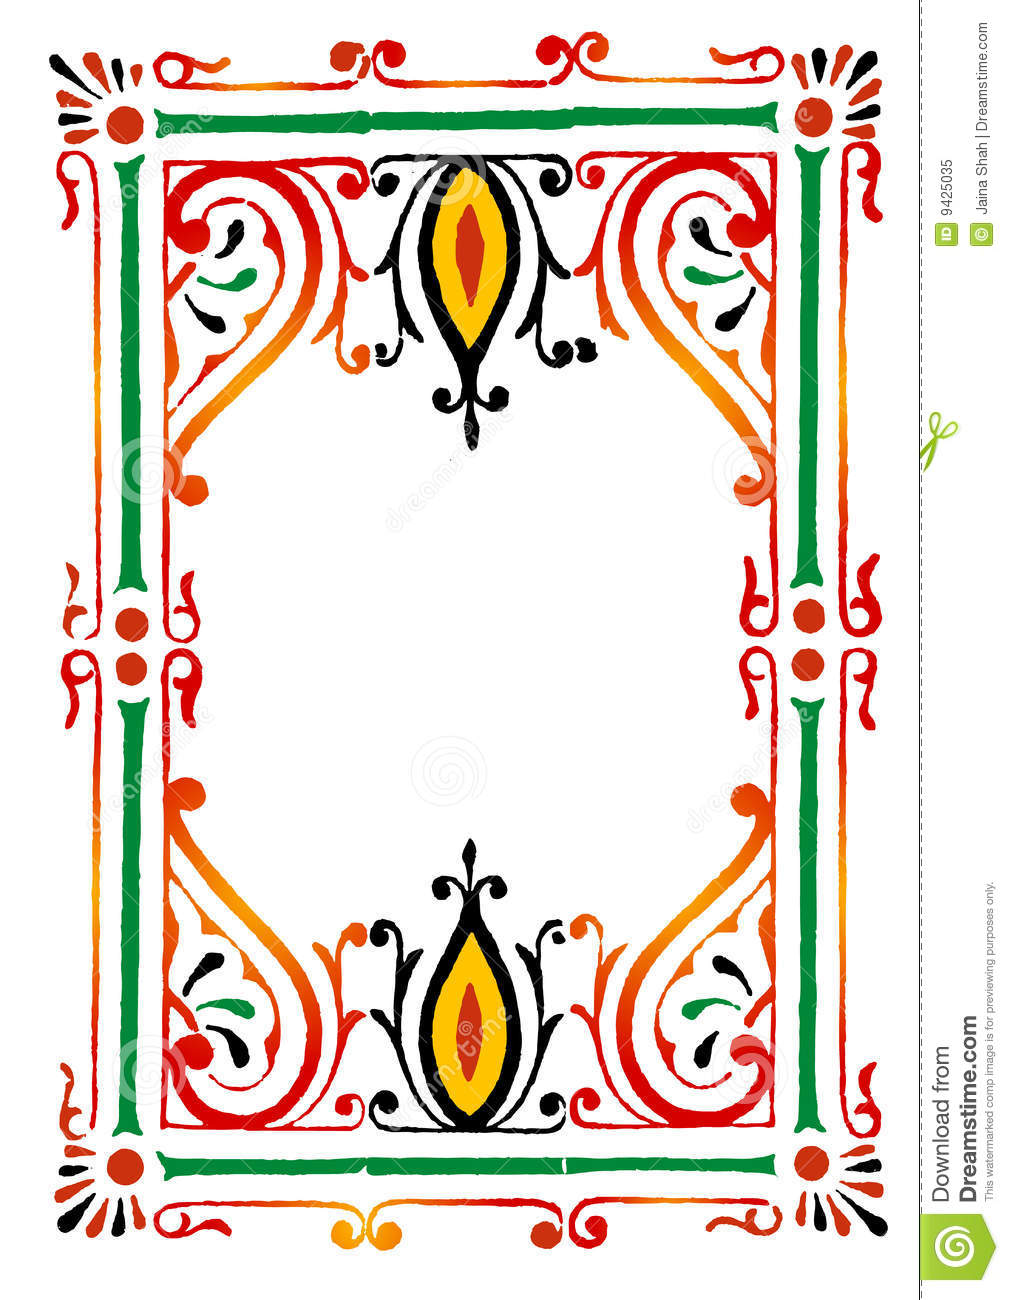 Rangoli Border Royalty Free Stock Photo - Image: 9425035